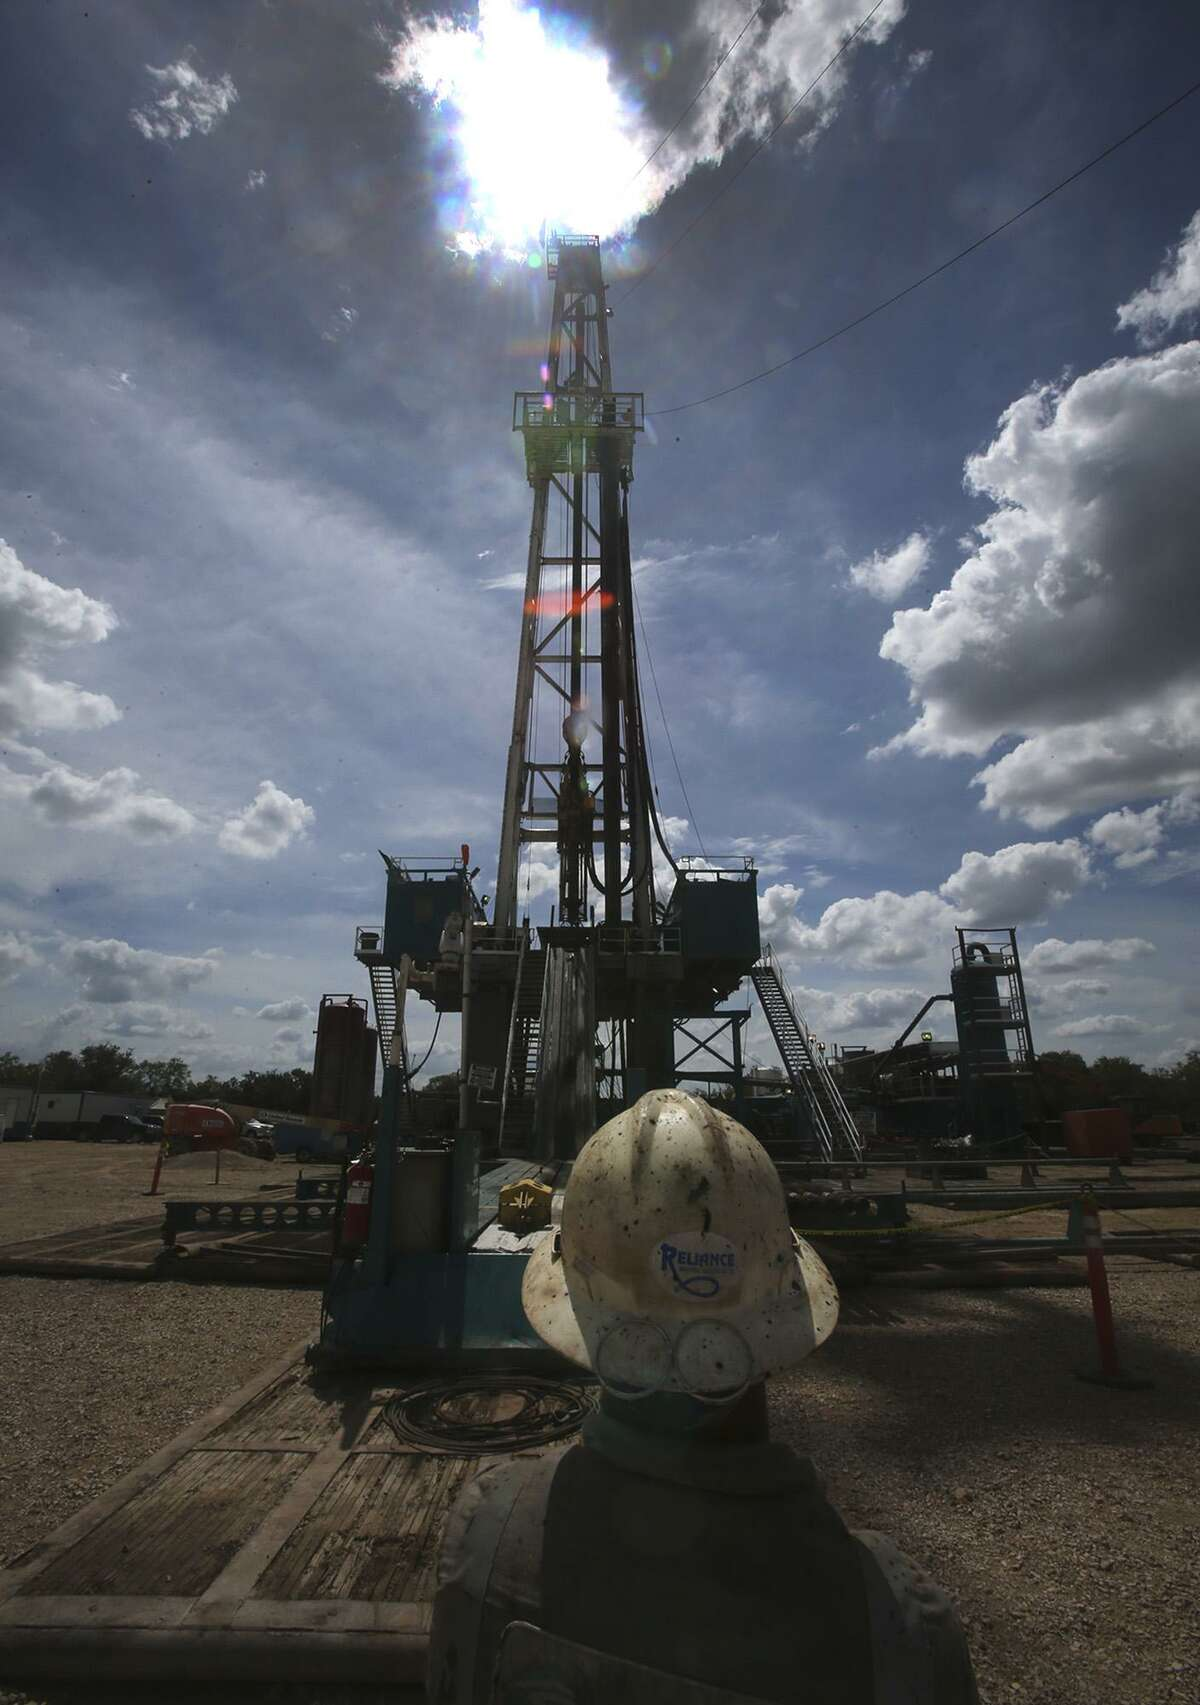 Dallas-based Comerica Bank said Texas economic activity is rising as oil producers become more efficient.